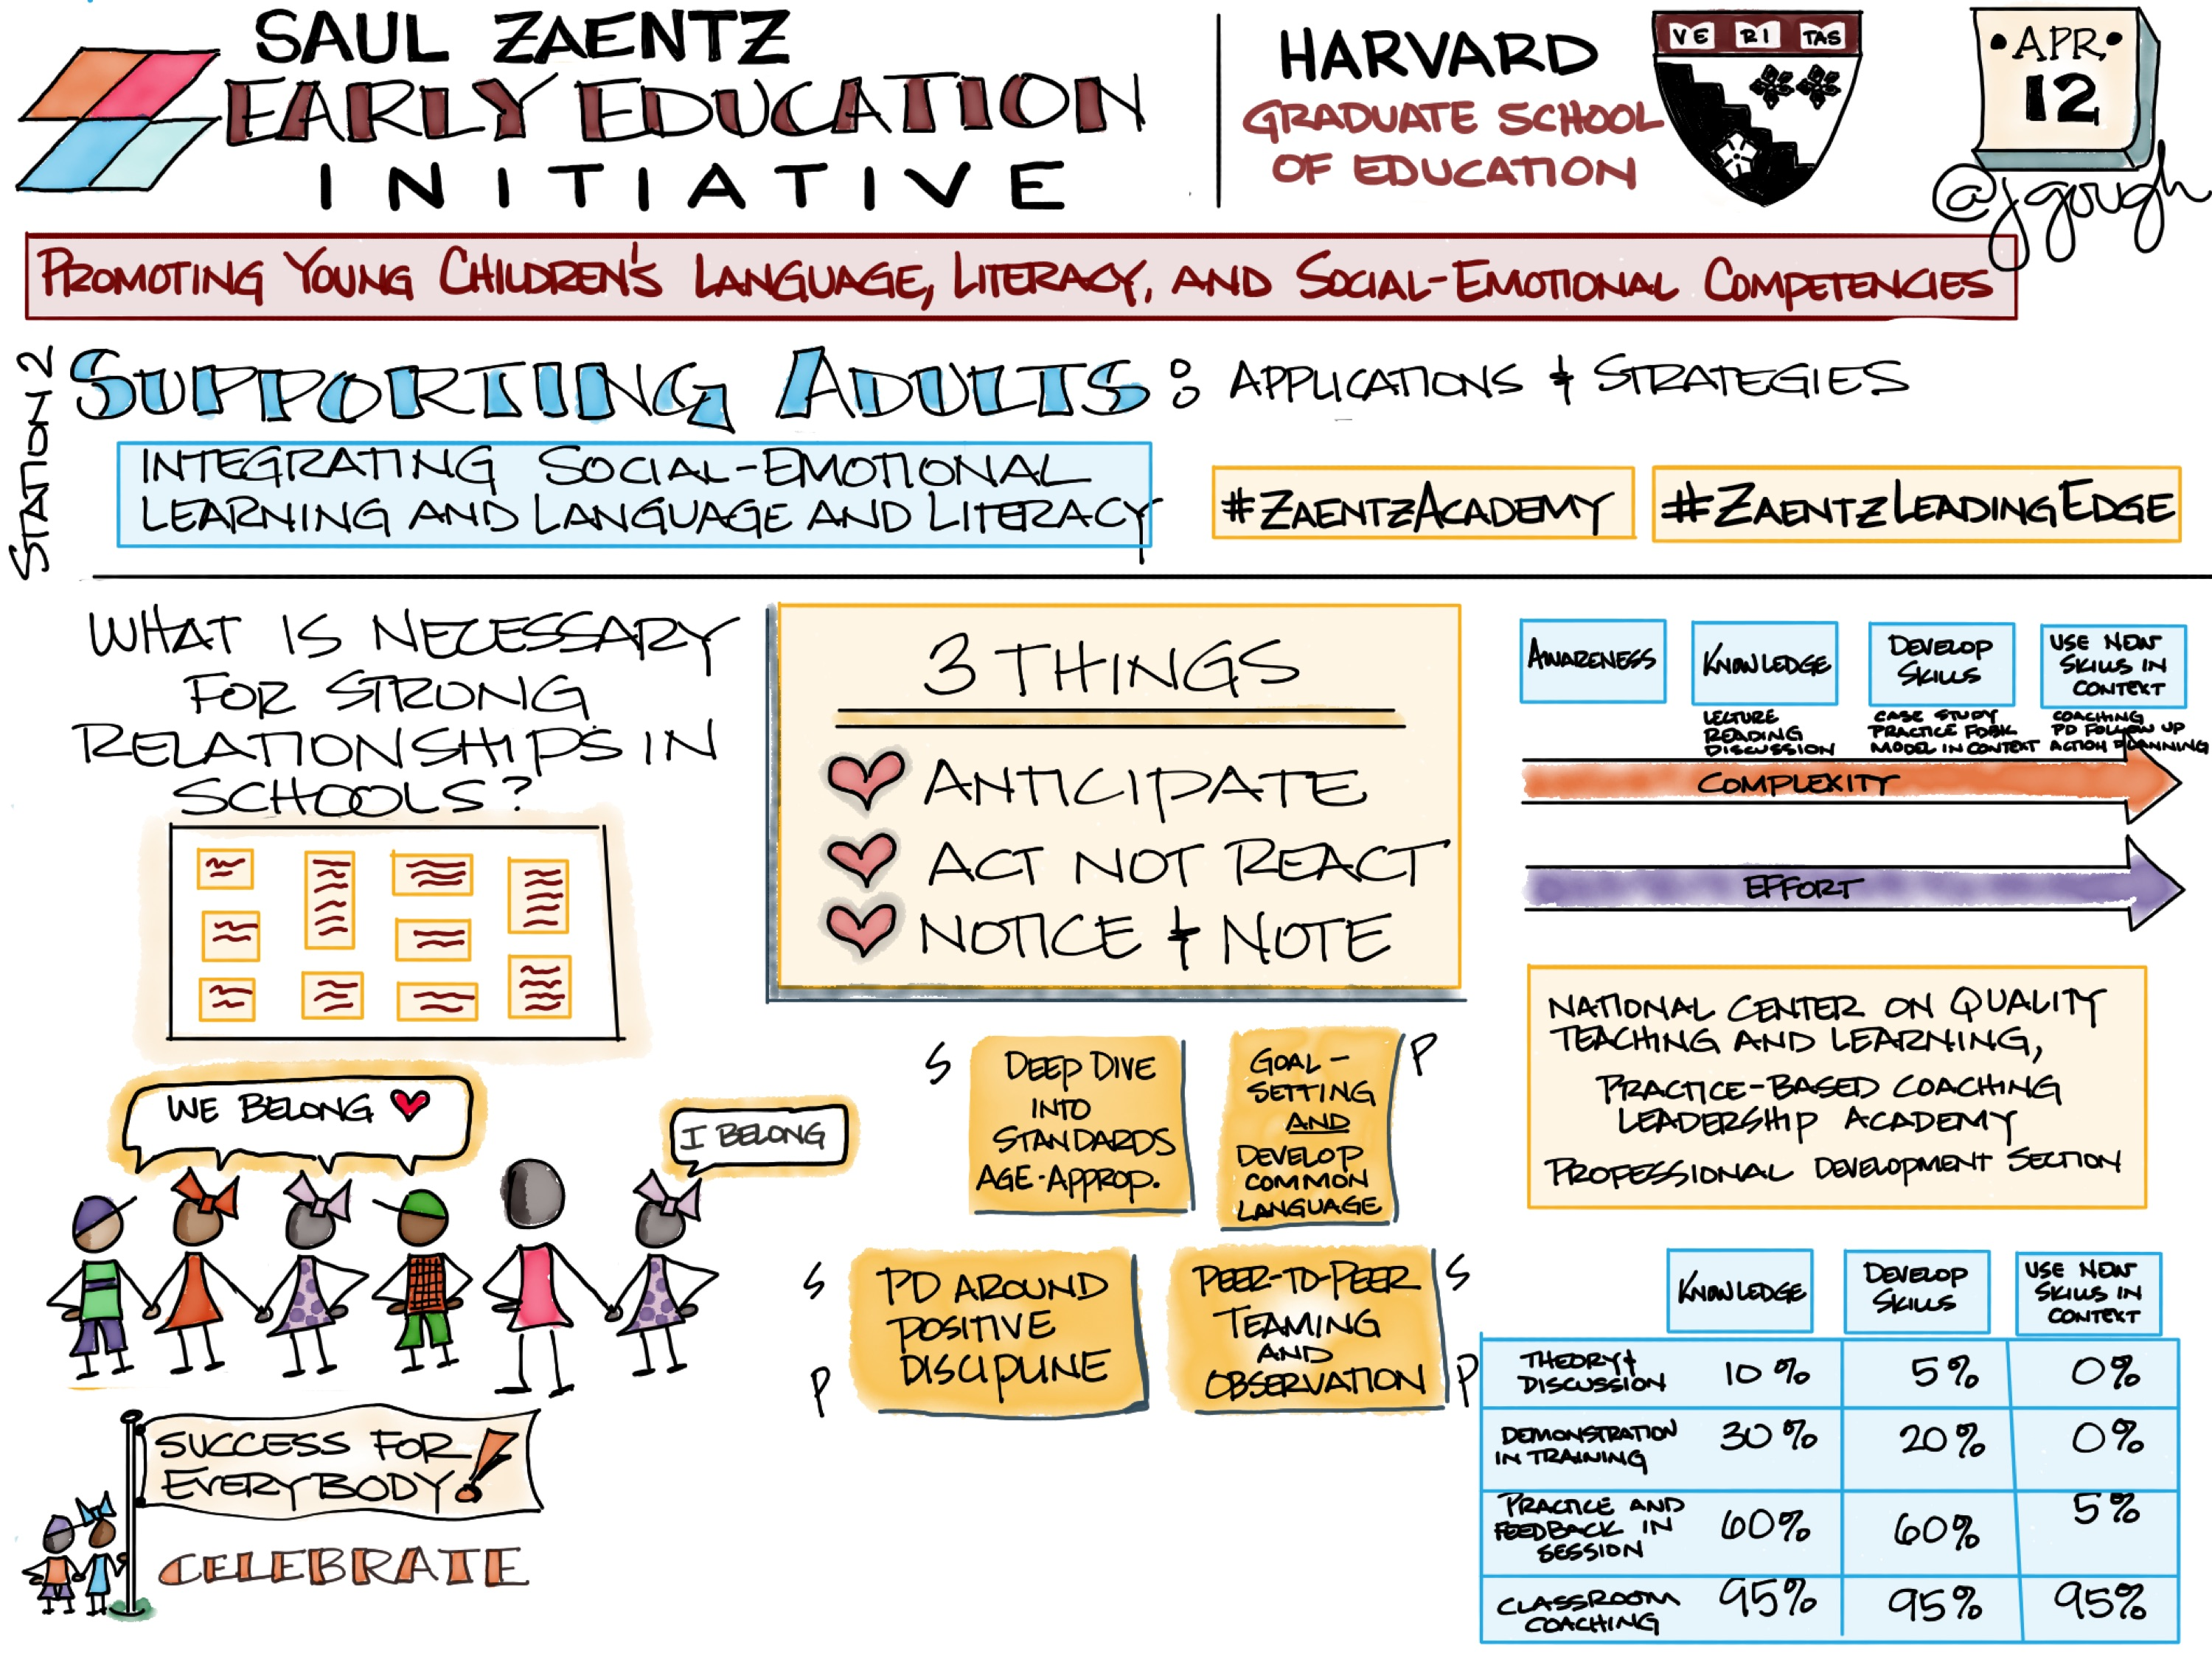 @ZaentzHarvardEd #ZaentzAcademy Station 2 session: Integrating Social-Emotional Learning and Language and Literacy Supporting Adults applications and strategies #ZaentzLeadingEdge